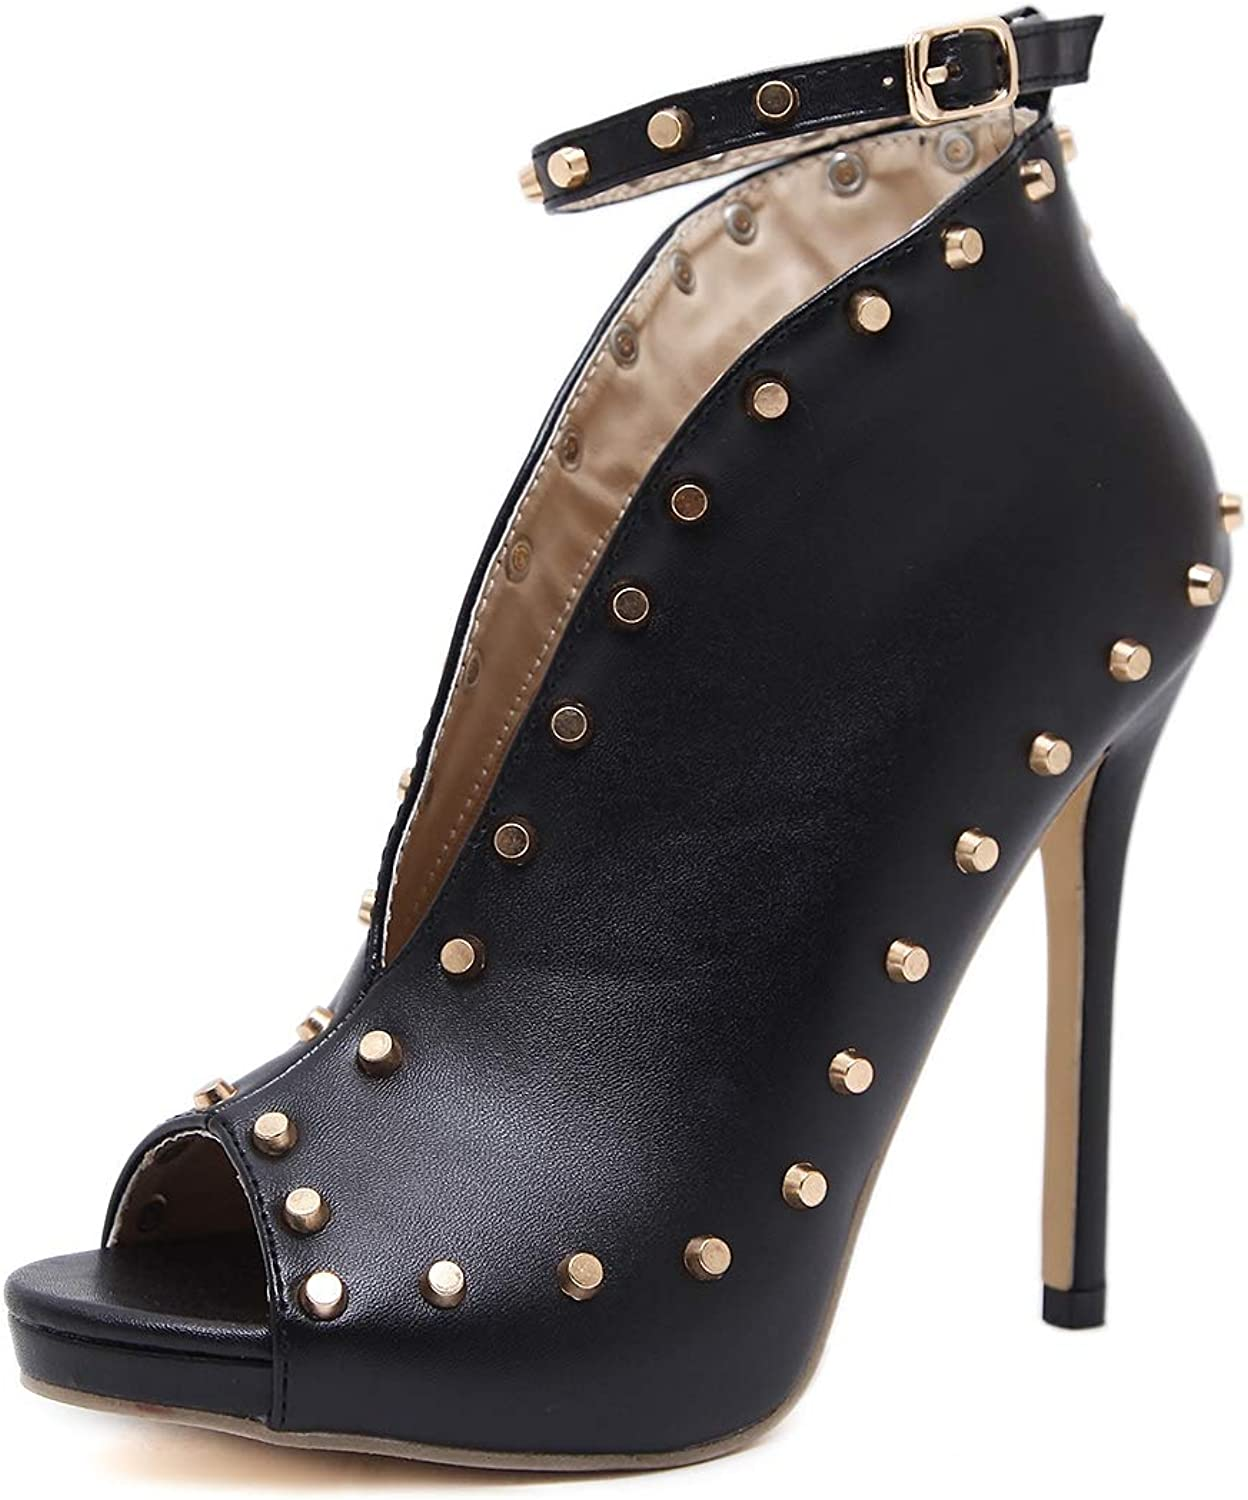 Women's Pointed Toe Studded Strappy Stiletto Leather Heeled Sandals